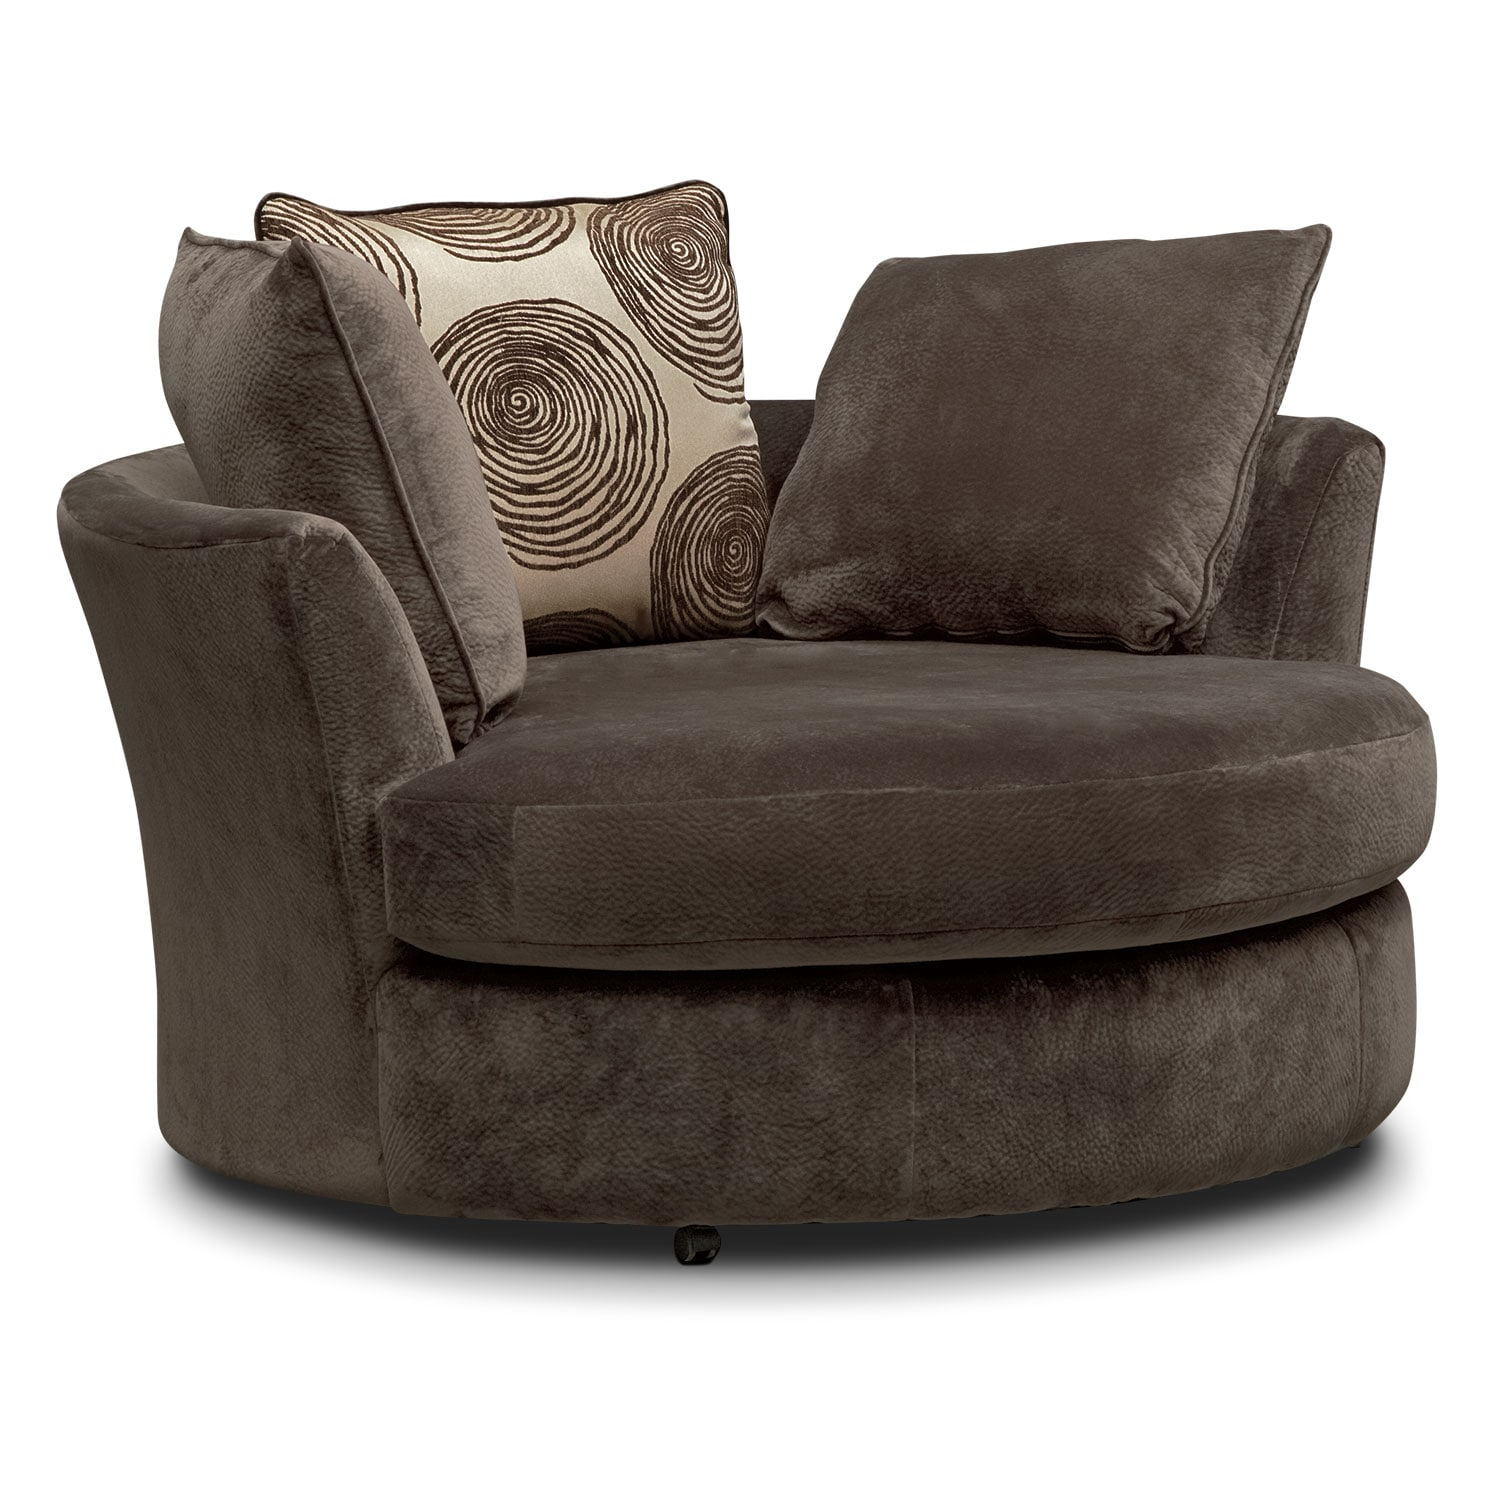 Brilliant Cordelle Swivel Chair Home Interior And Landscaping Ferensignezvosmurscom